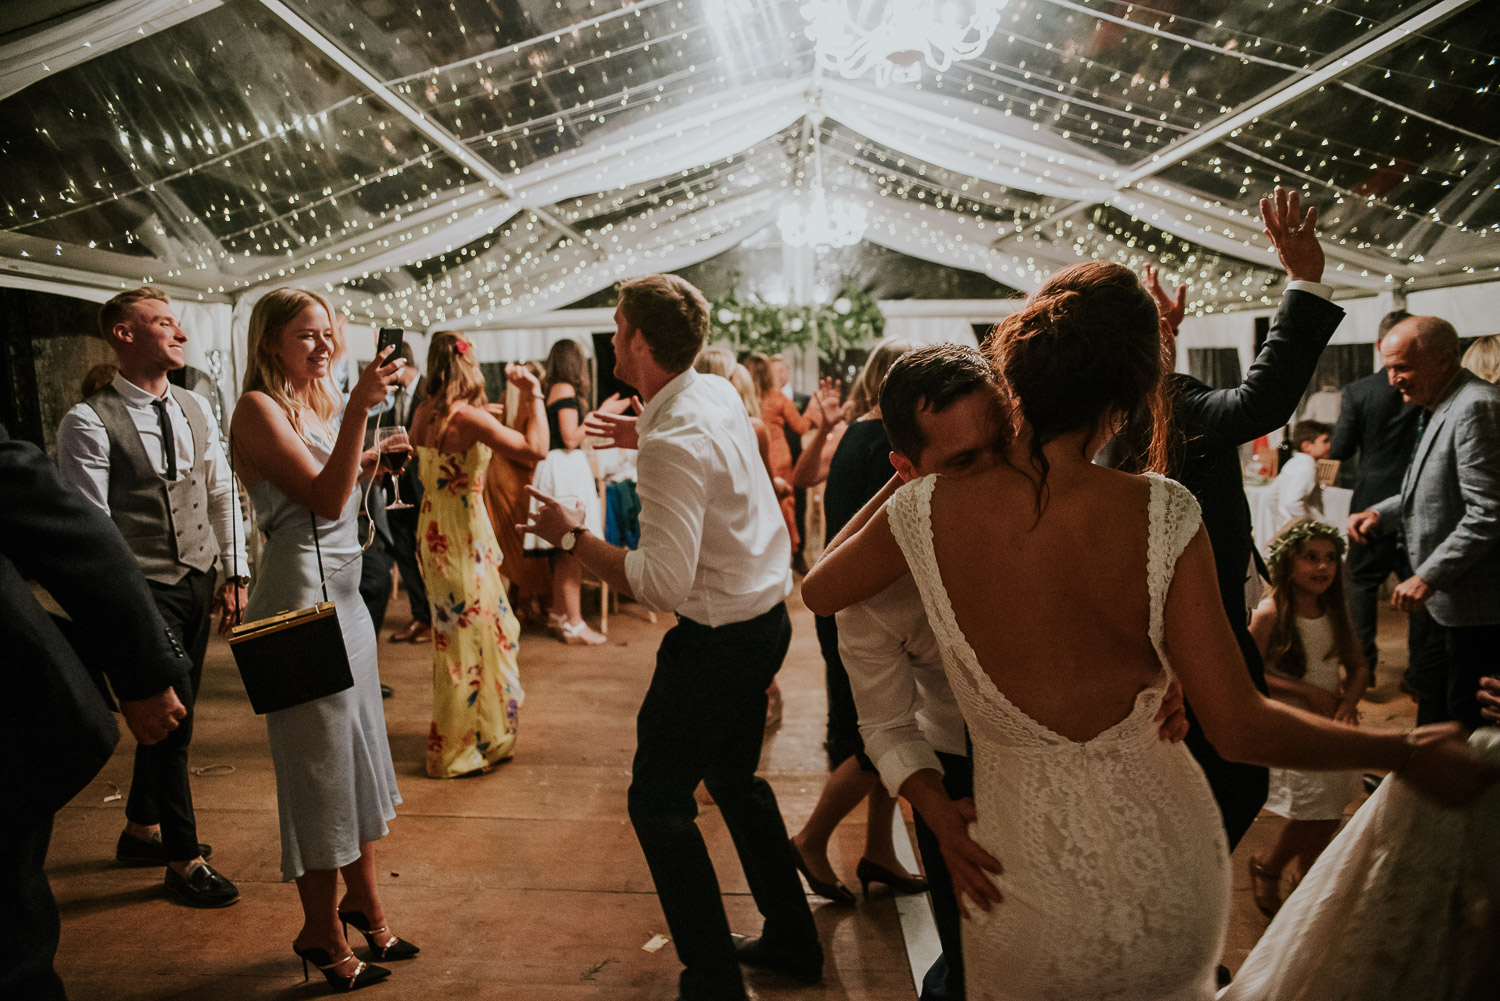 bergerac_wedding_katy_webb_photography_france_UK181